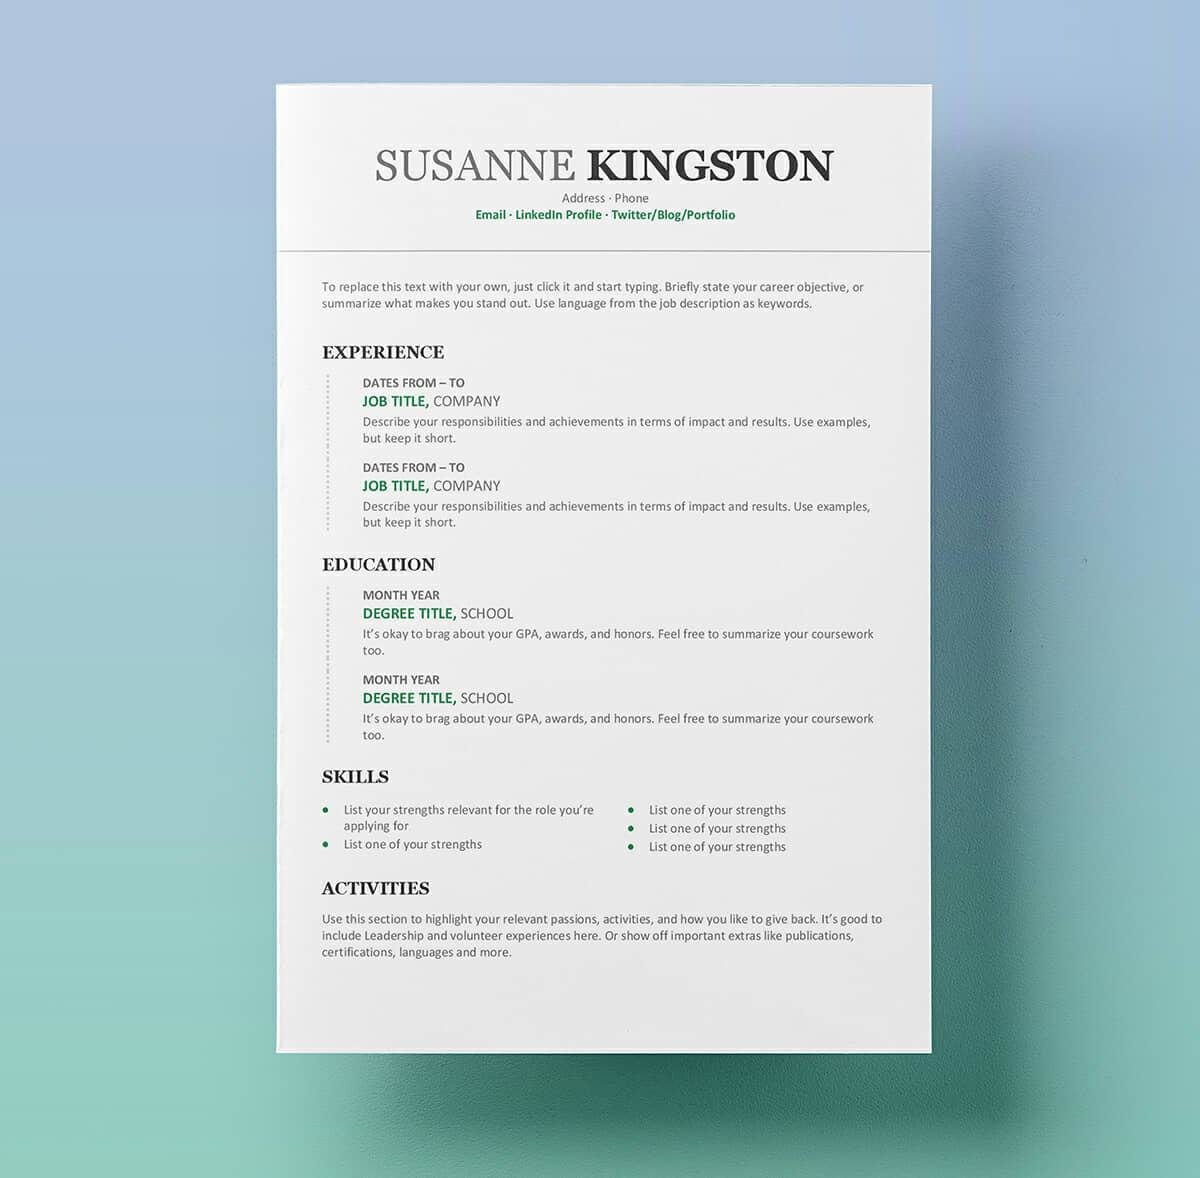 resume templates for microsoft word free format template summary career change executive Resume Resume Format Template Word